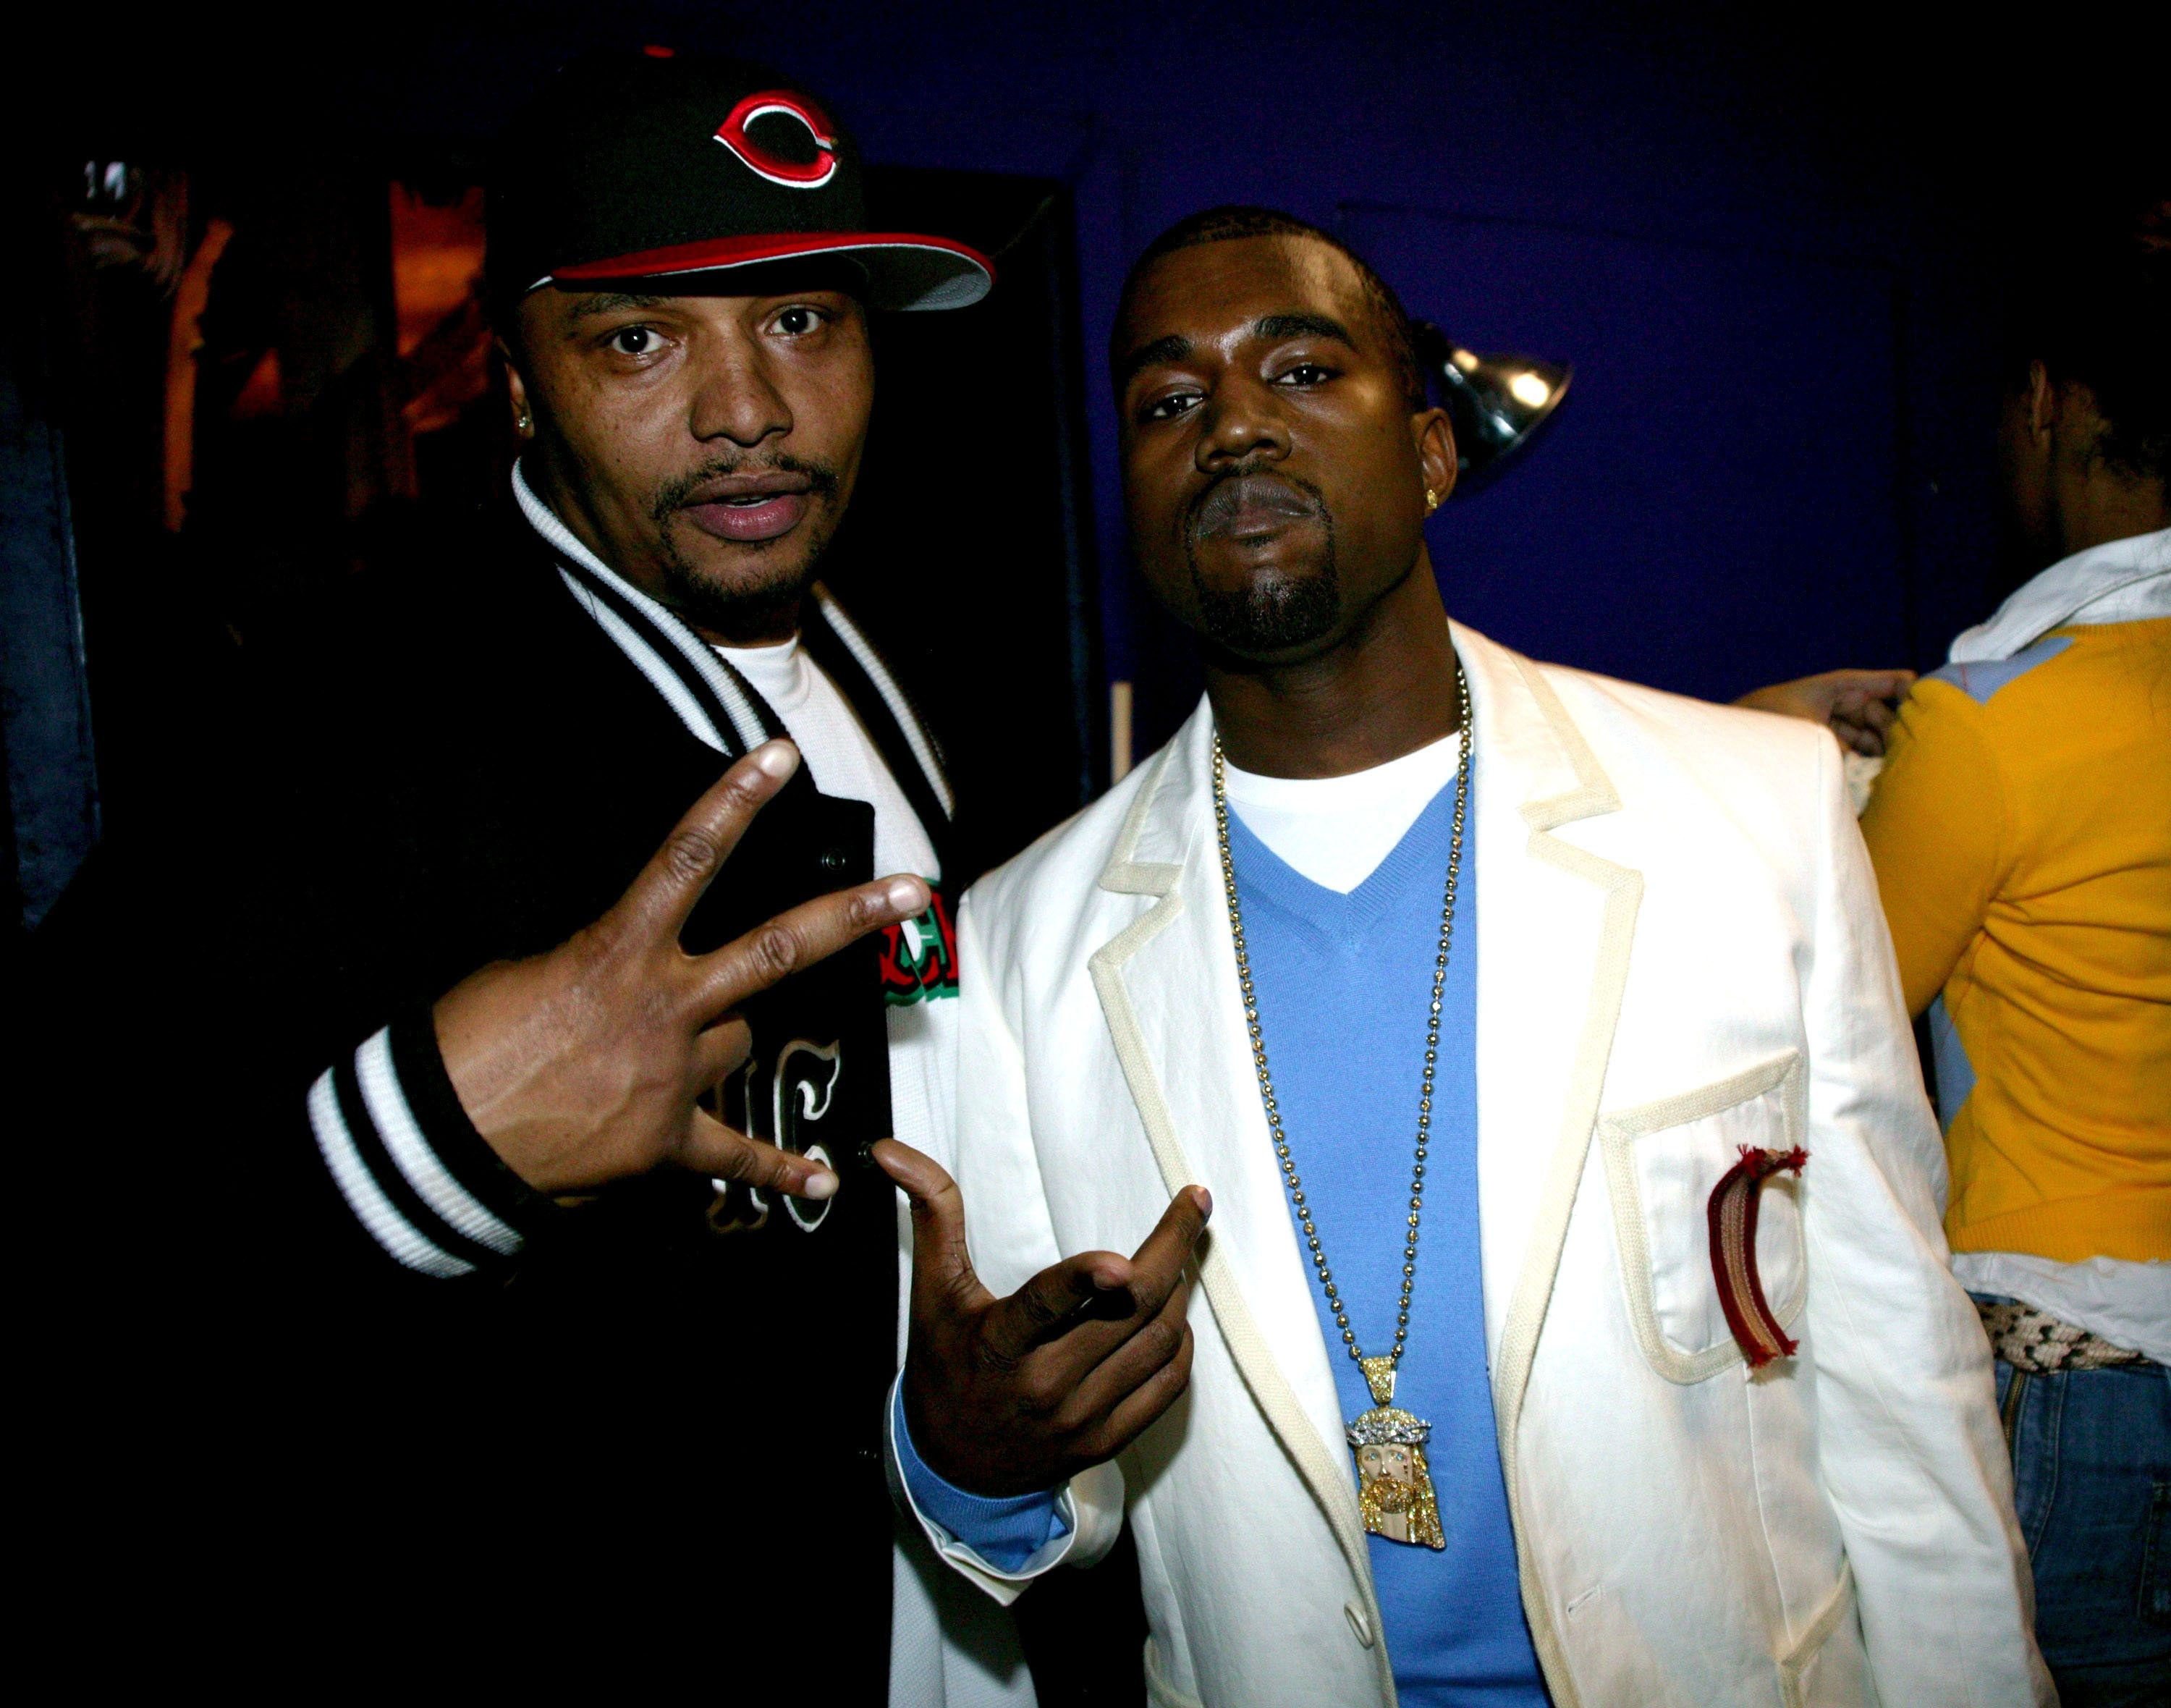 Malik Yusef and Kanye West have known each other for more than a decade. Here they are at the Def...